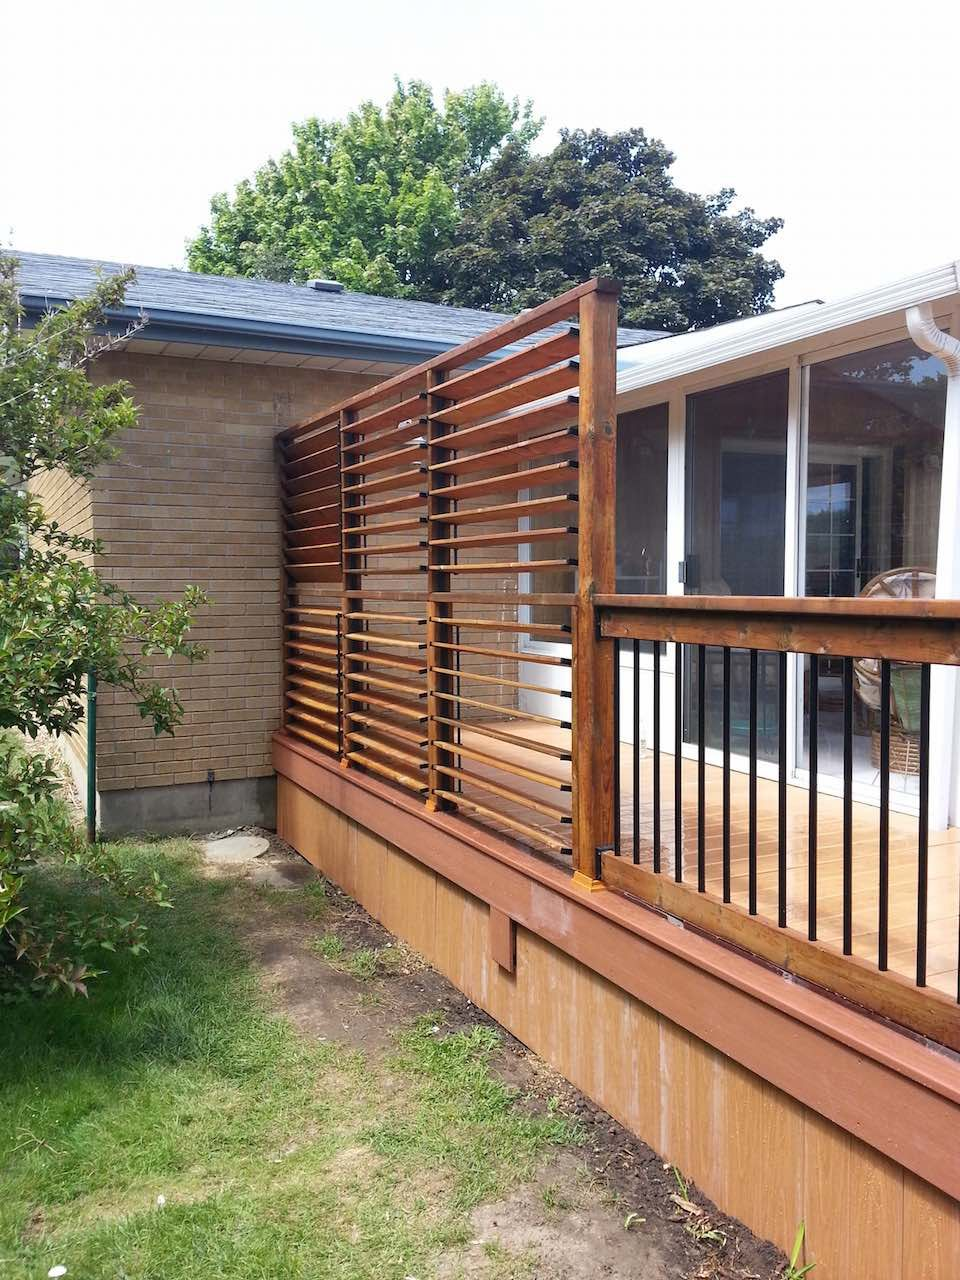 Store Vertical Transparent Pour Terrasse Backyard Privacy Screen Louvers Great Solution By Flex Fences